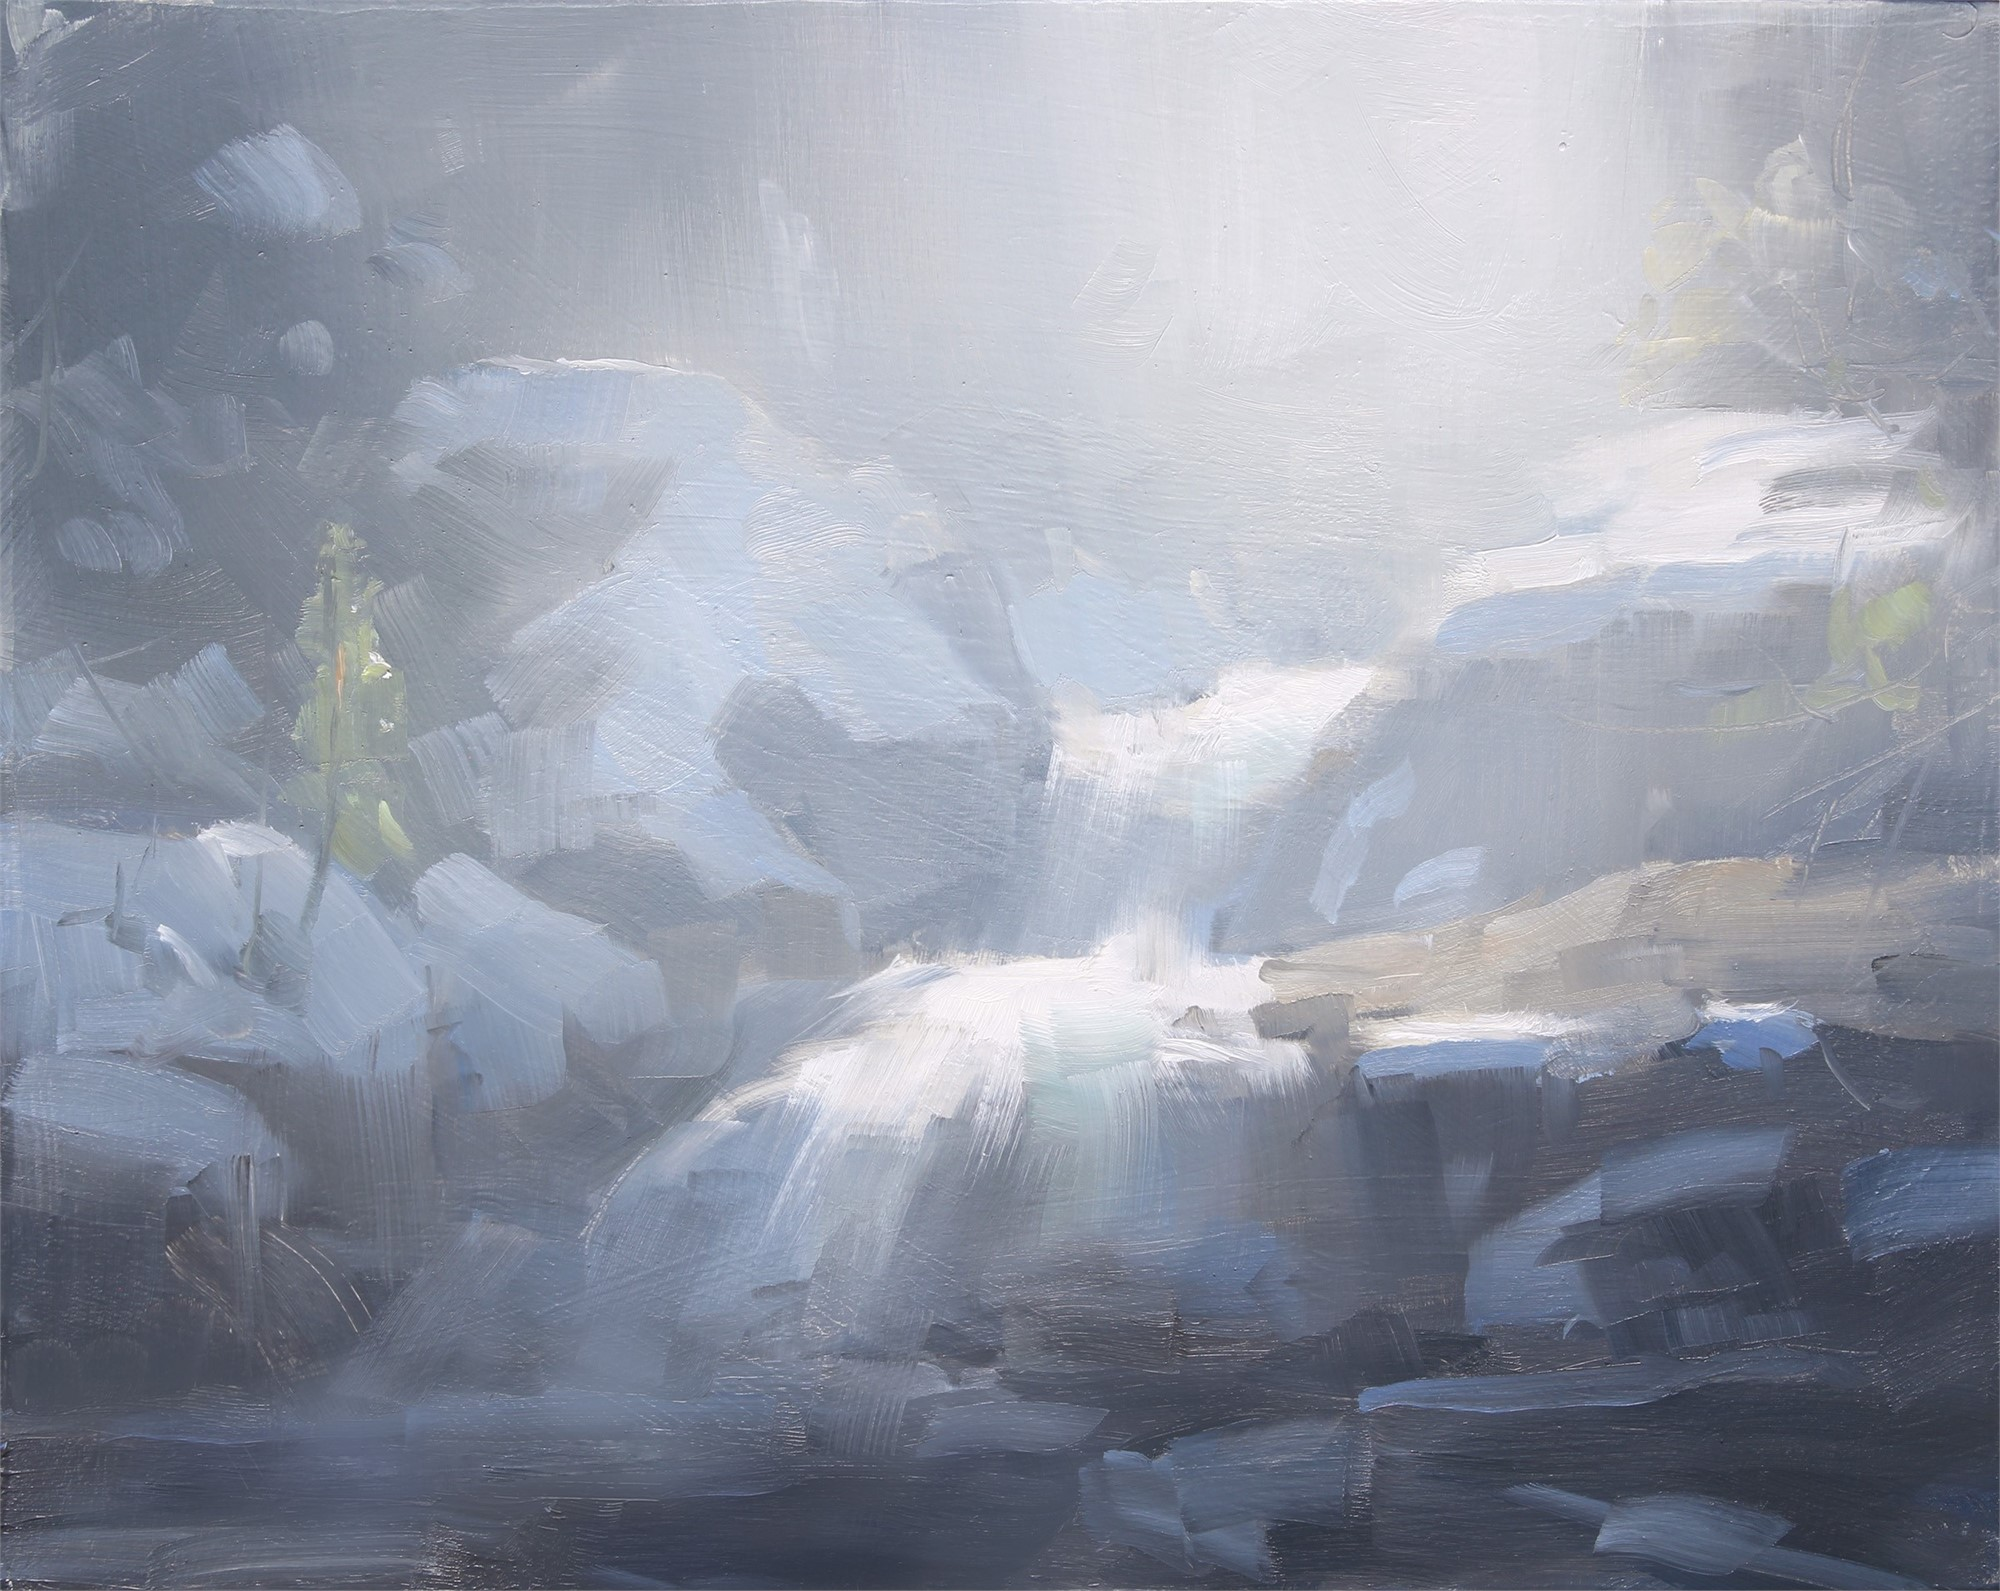 Snow on Copeland Falls Study by Dave Santillanes